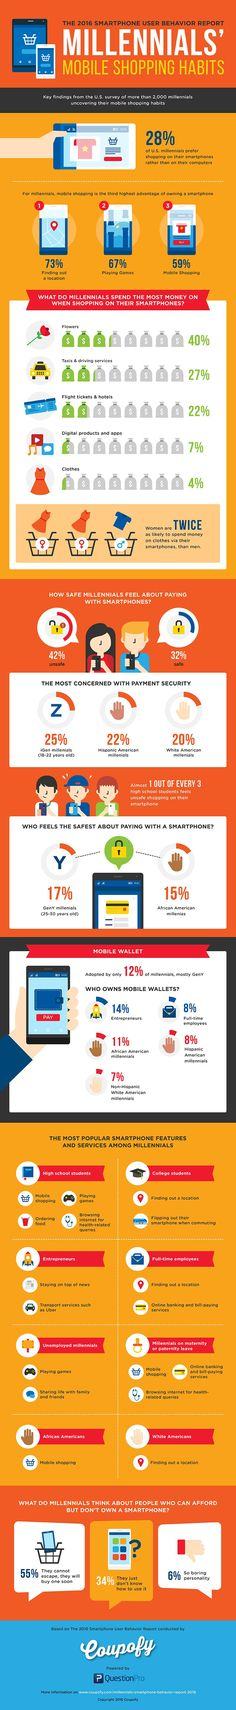 millennials mobile shopping habits